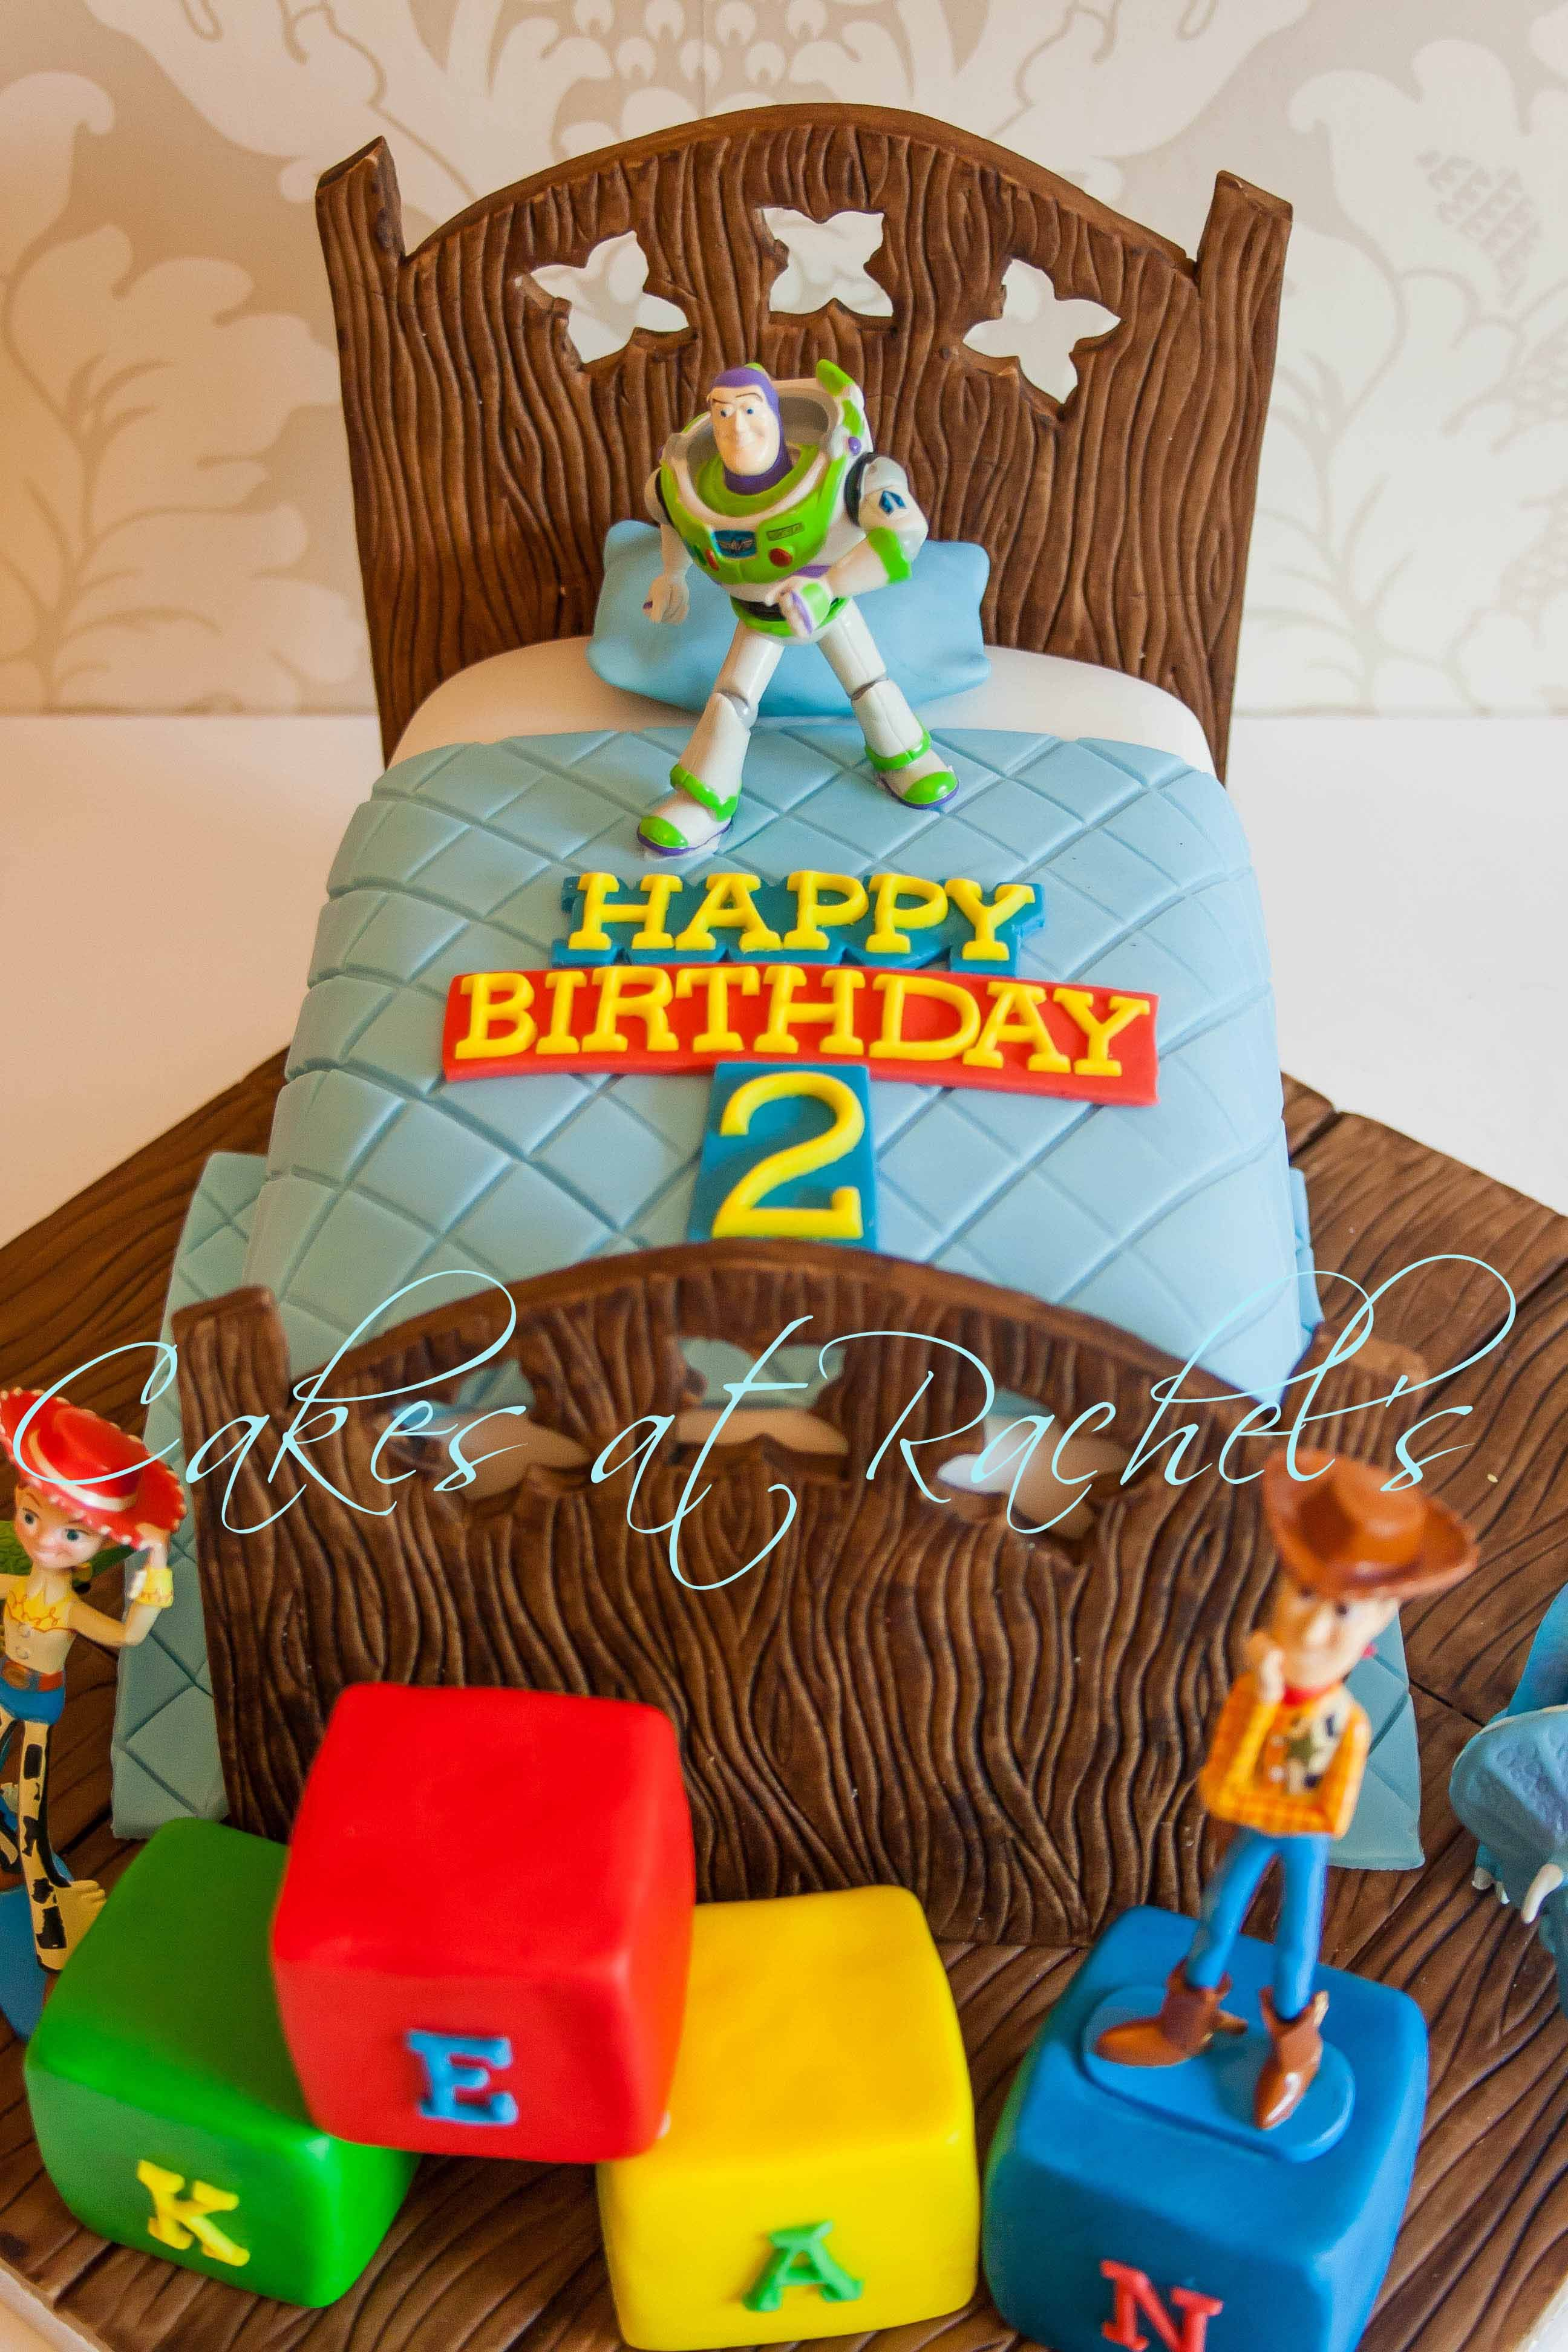 Pleasing Toy Story Cake With Images Toy Story Birthday Cake Toy Story Funny Birthday Cards Online Aeocydamsfinfo